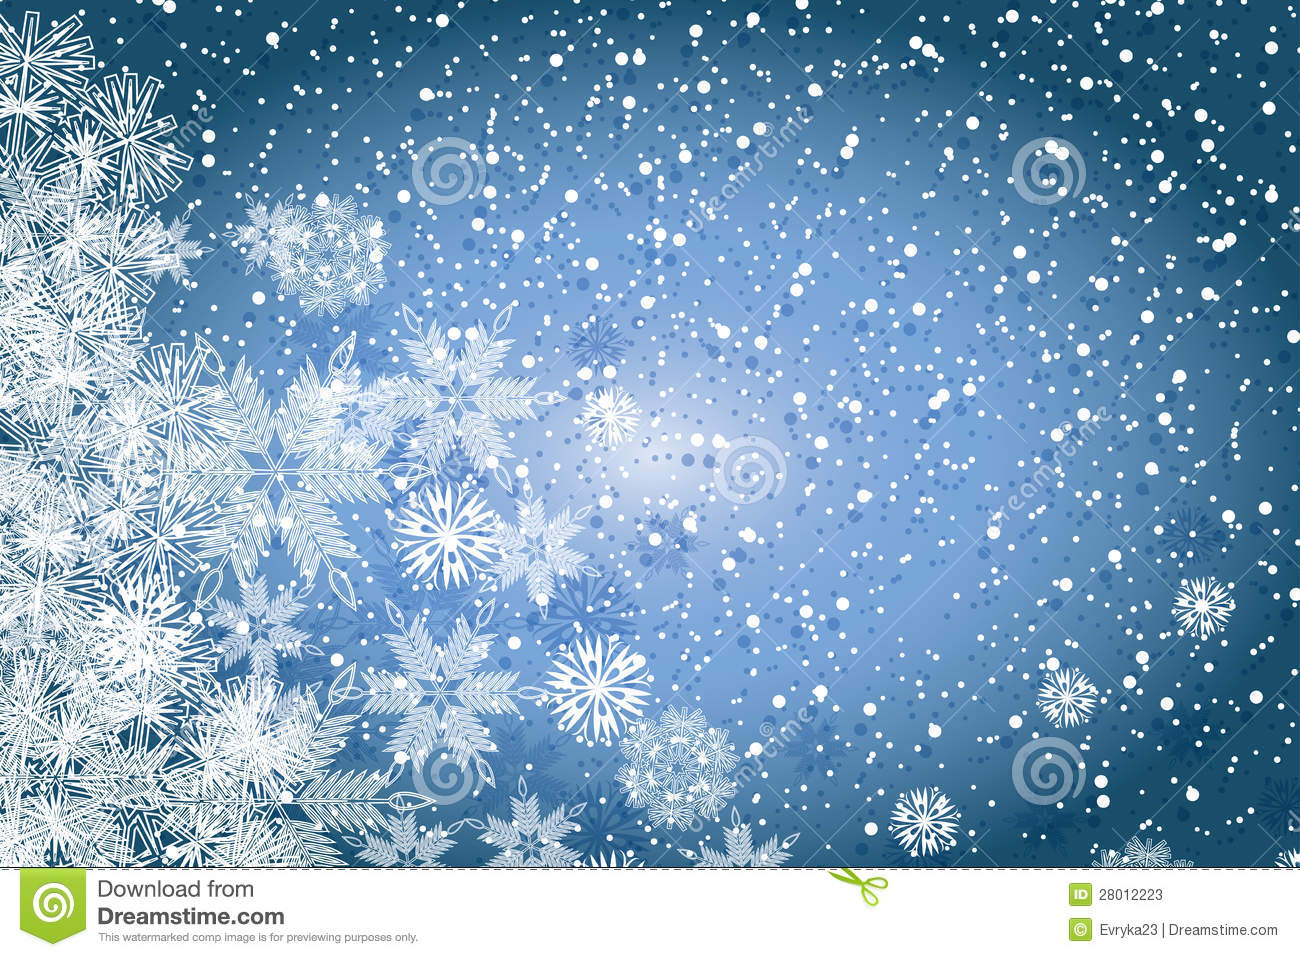 abstract winter background free - photo #27